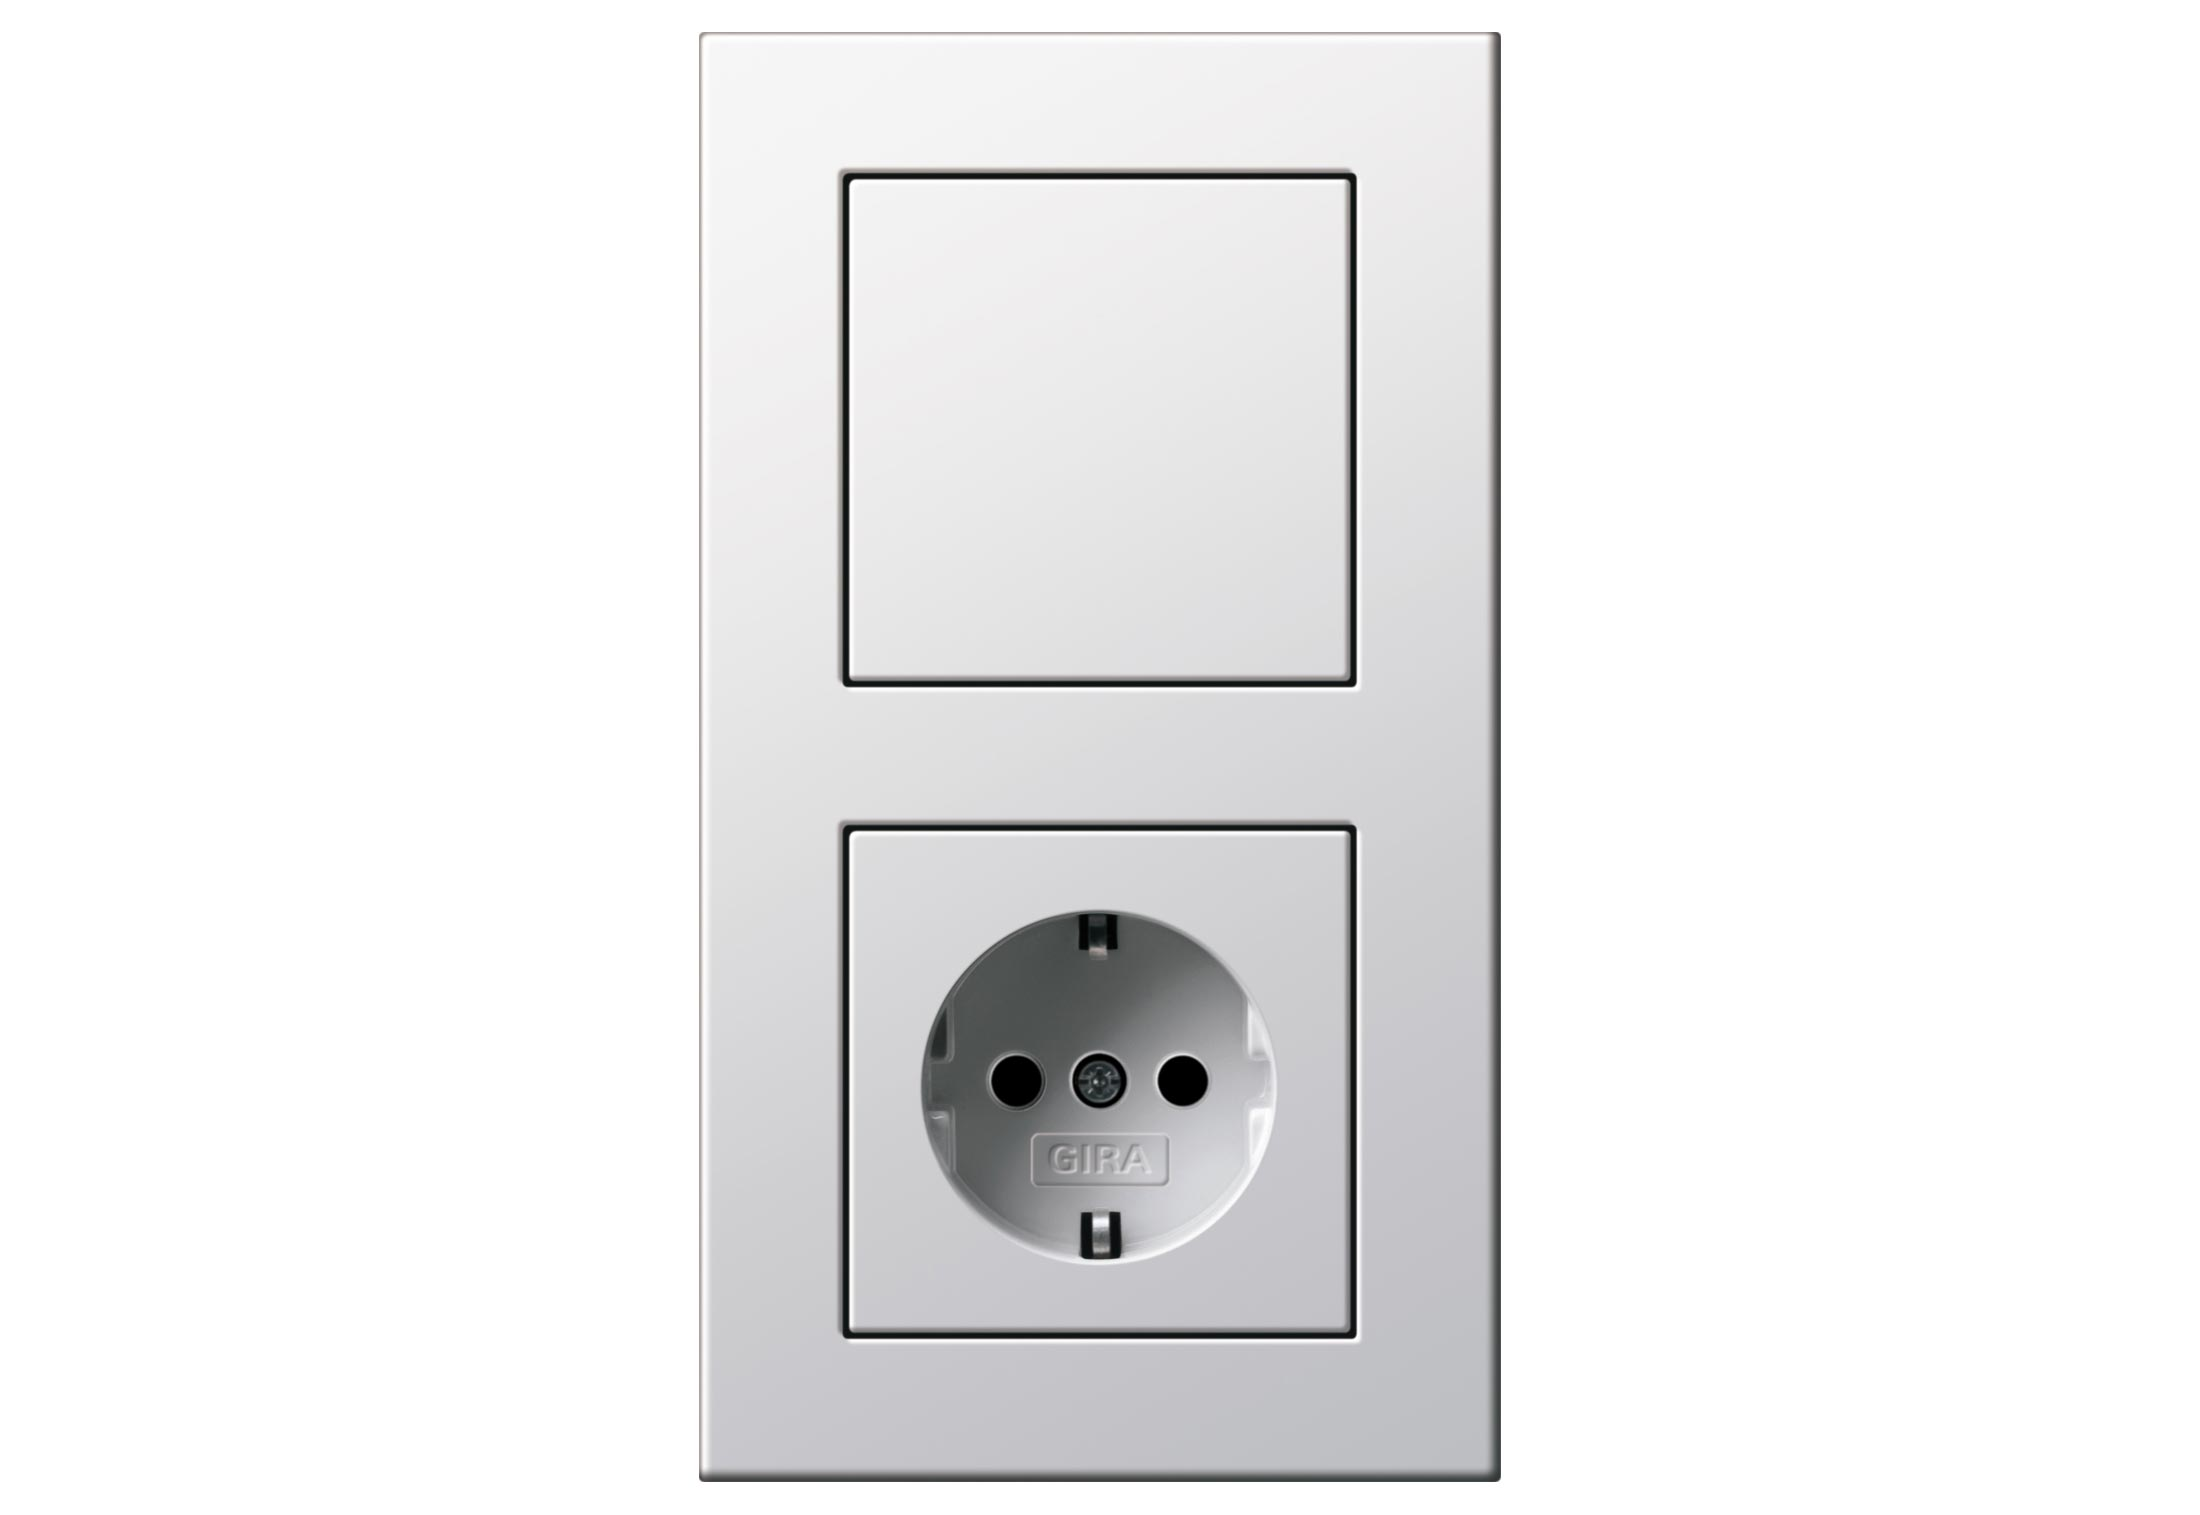 e22-switch-socket-3 Spannende 3 Fach Steckdose Unterputz Dekorationen